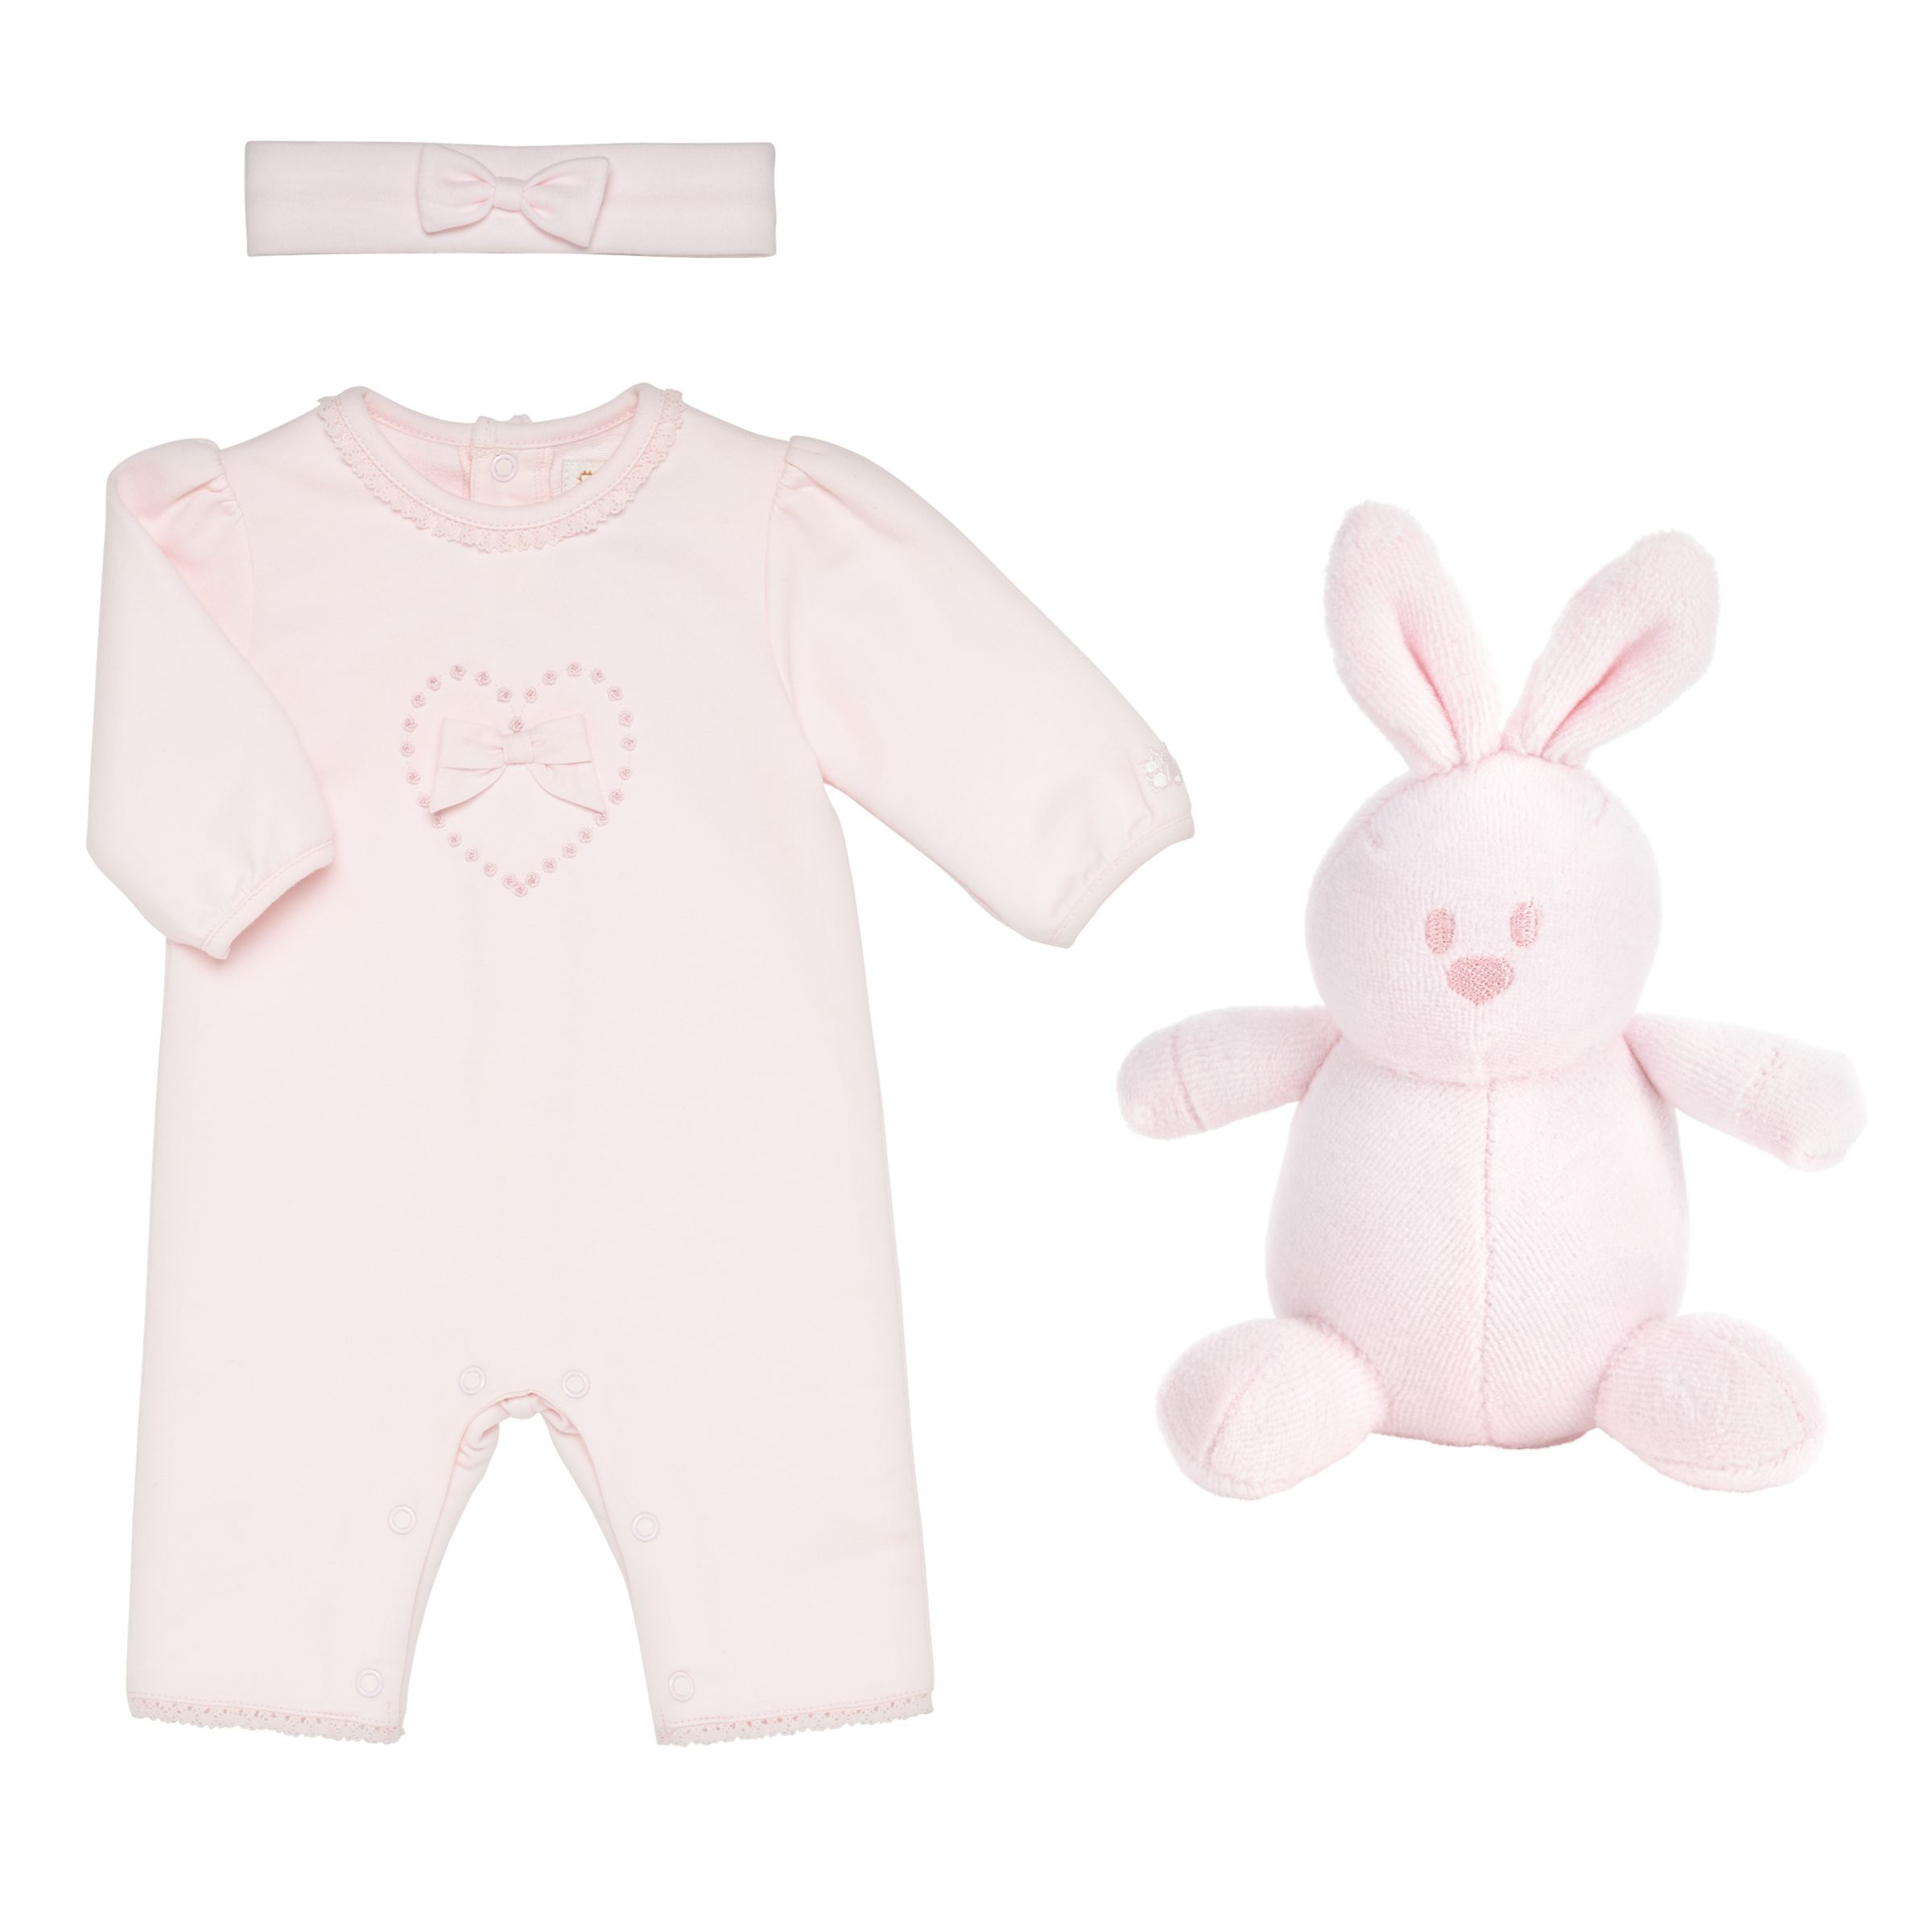 Emile et Rose Emile et Rose Baby Kitty Hand Embroidered Two Piece Set, Pink